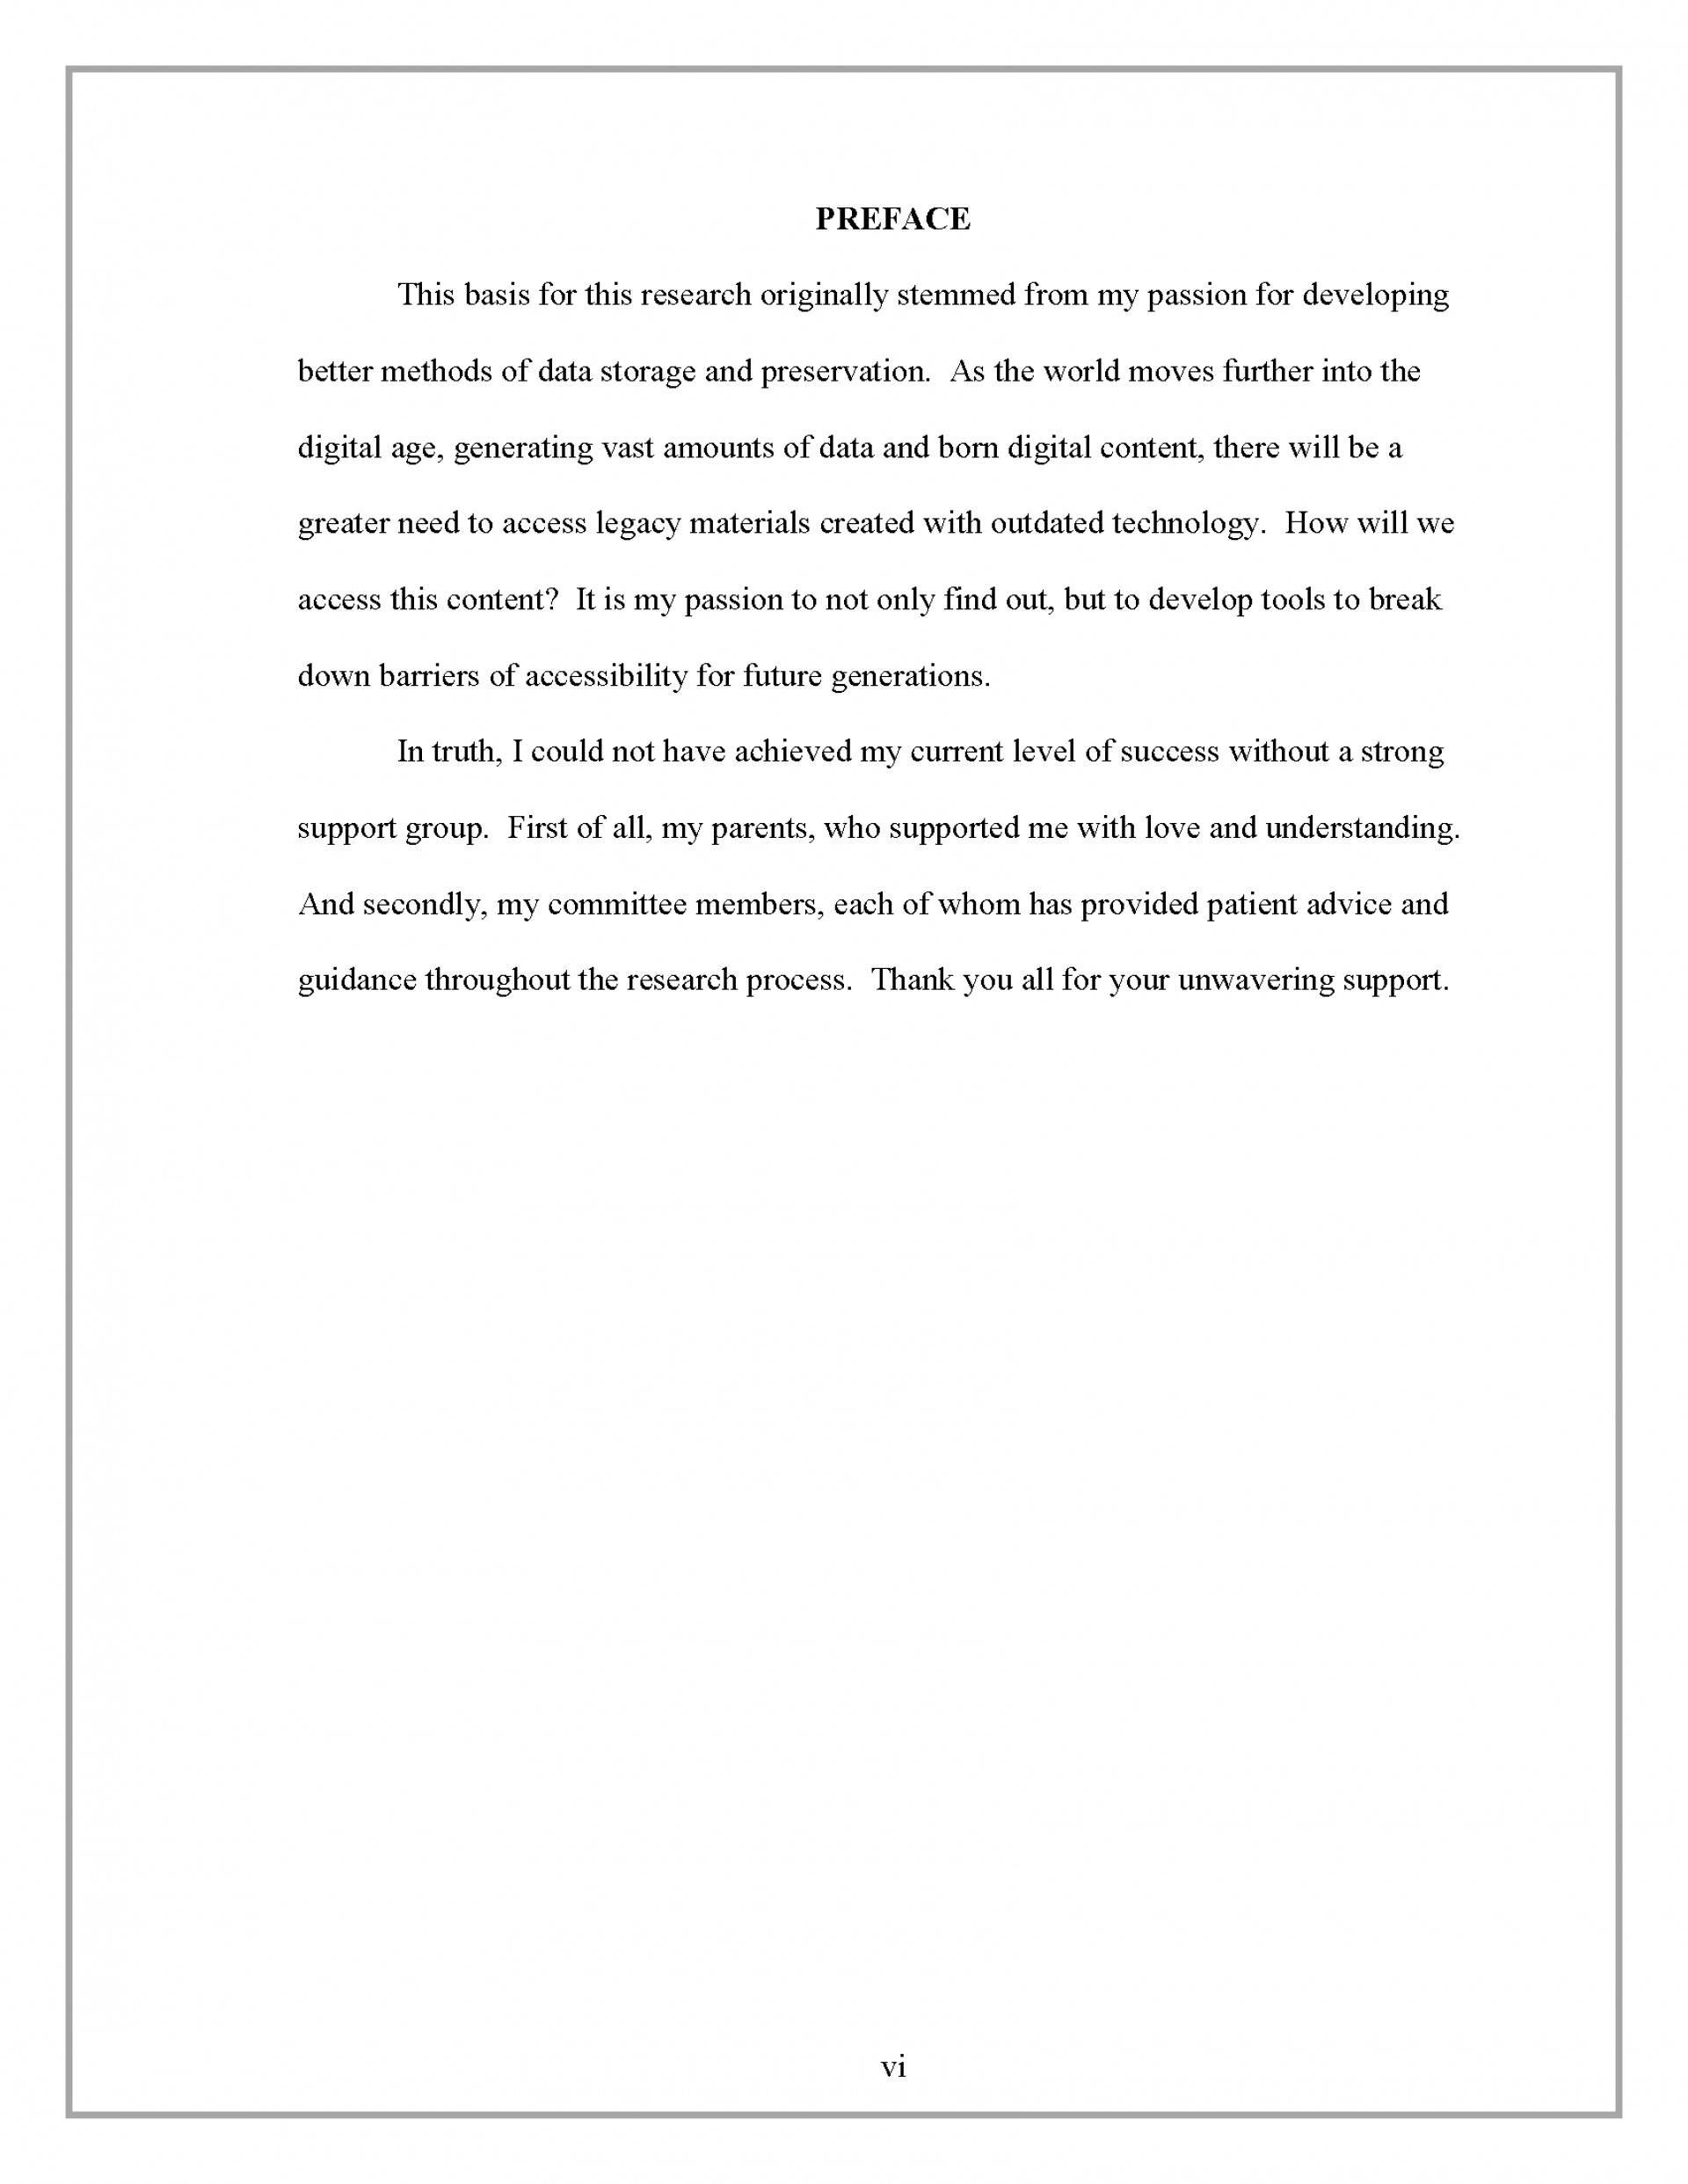 016 Research Paper Preface Border Best Topics In Computer Frightening Science Top 10 1920